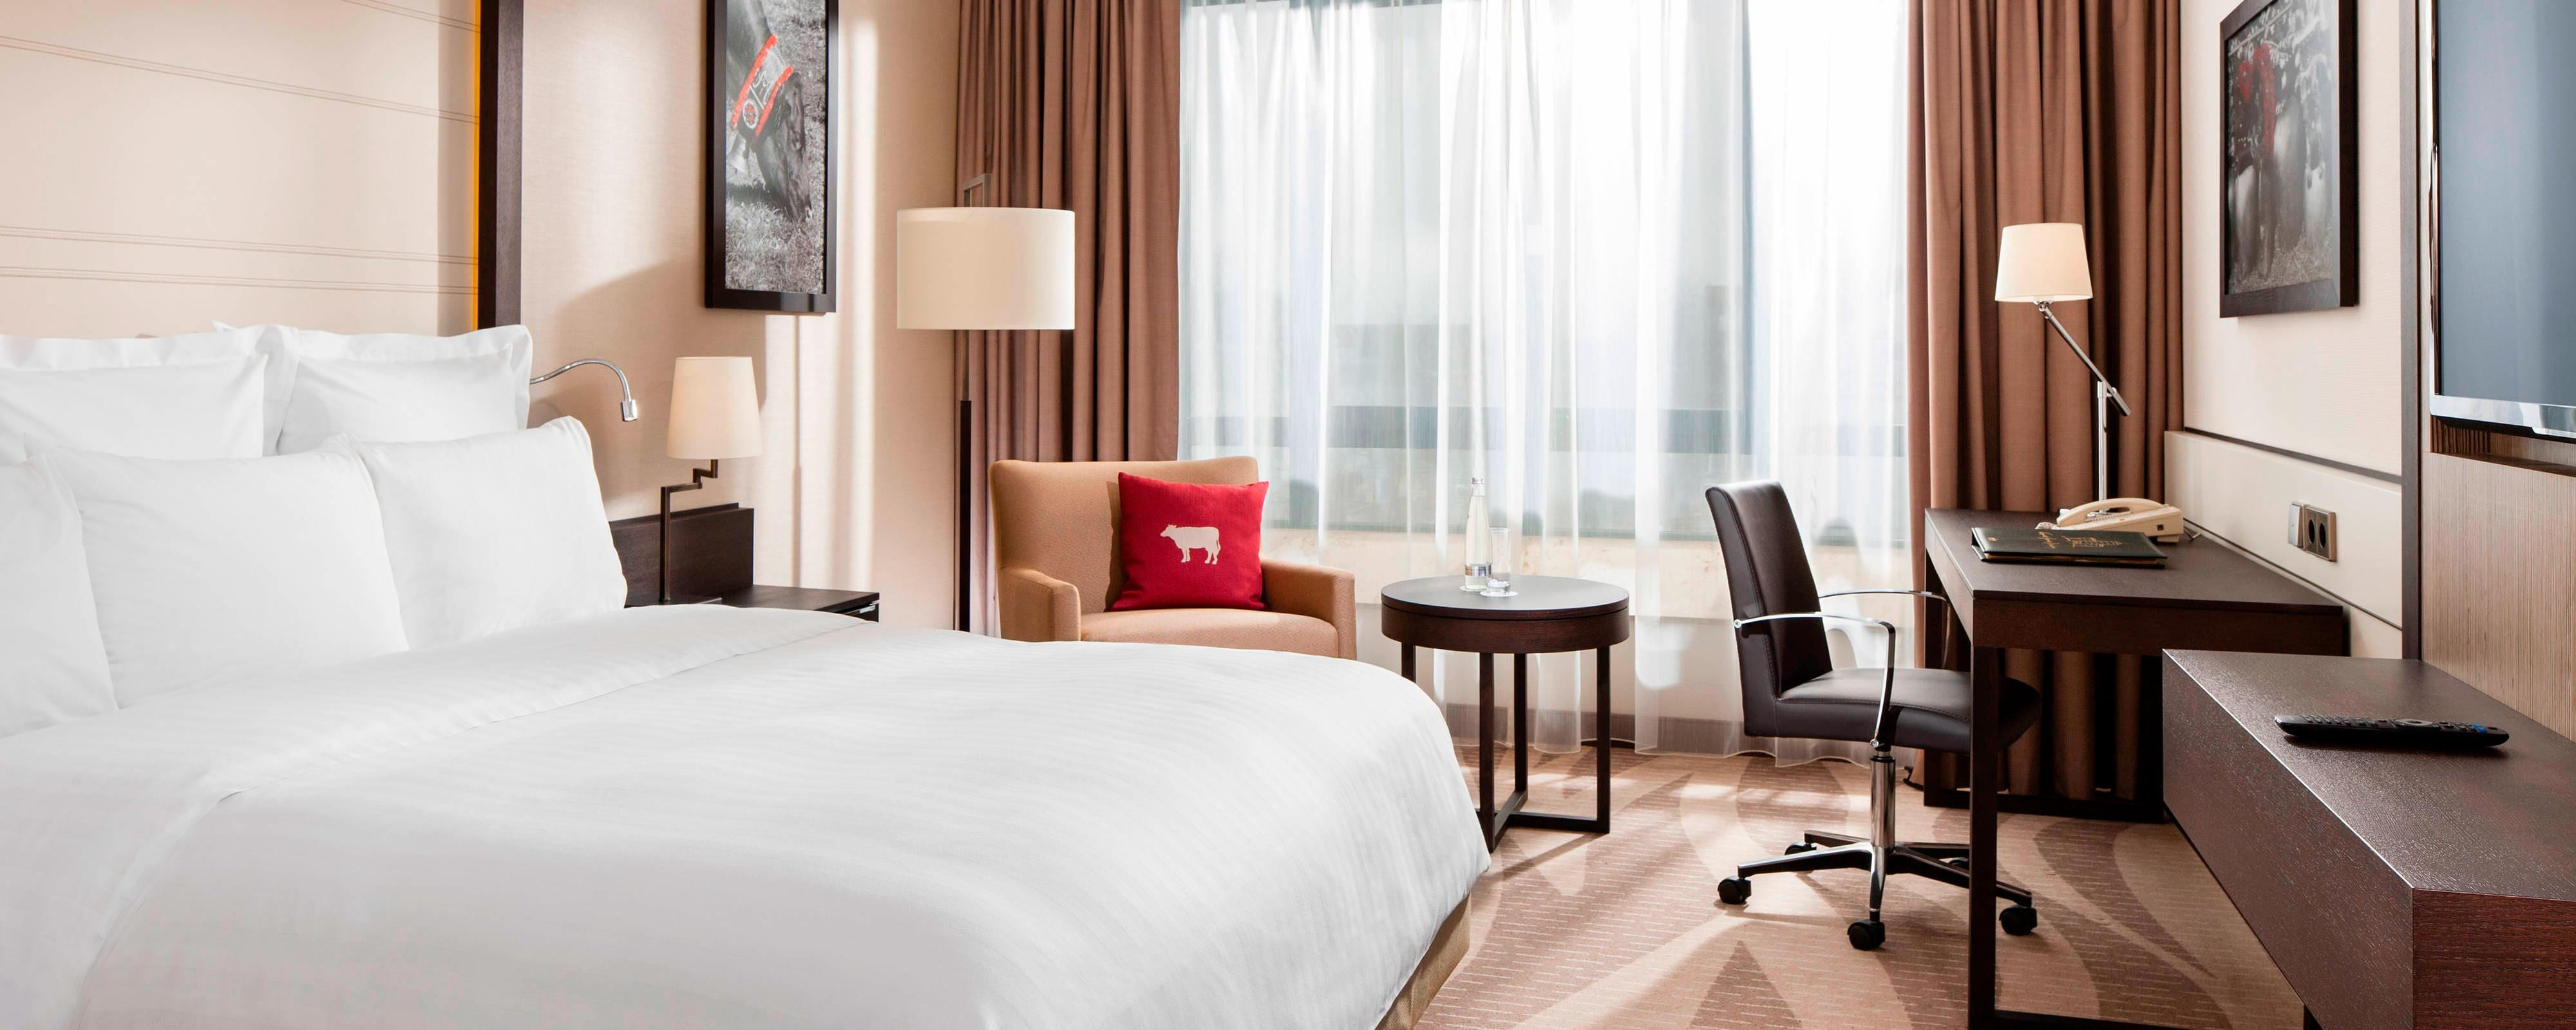 Chambre au Munich Airport Marriott Hotel